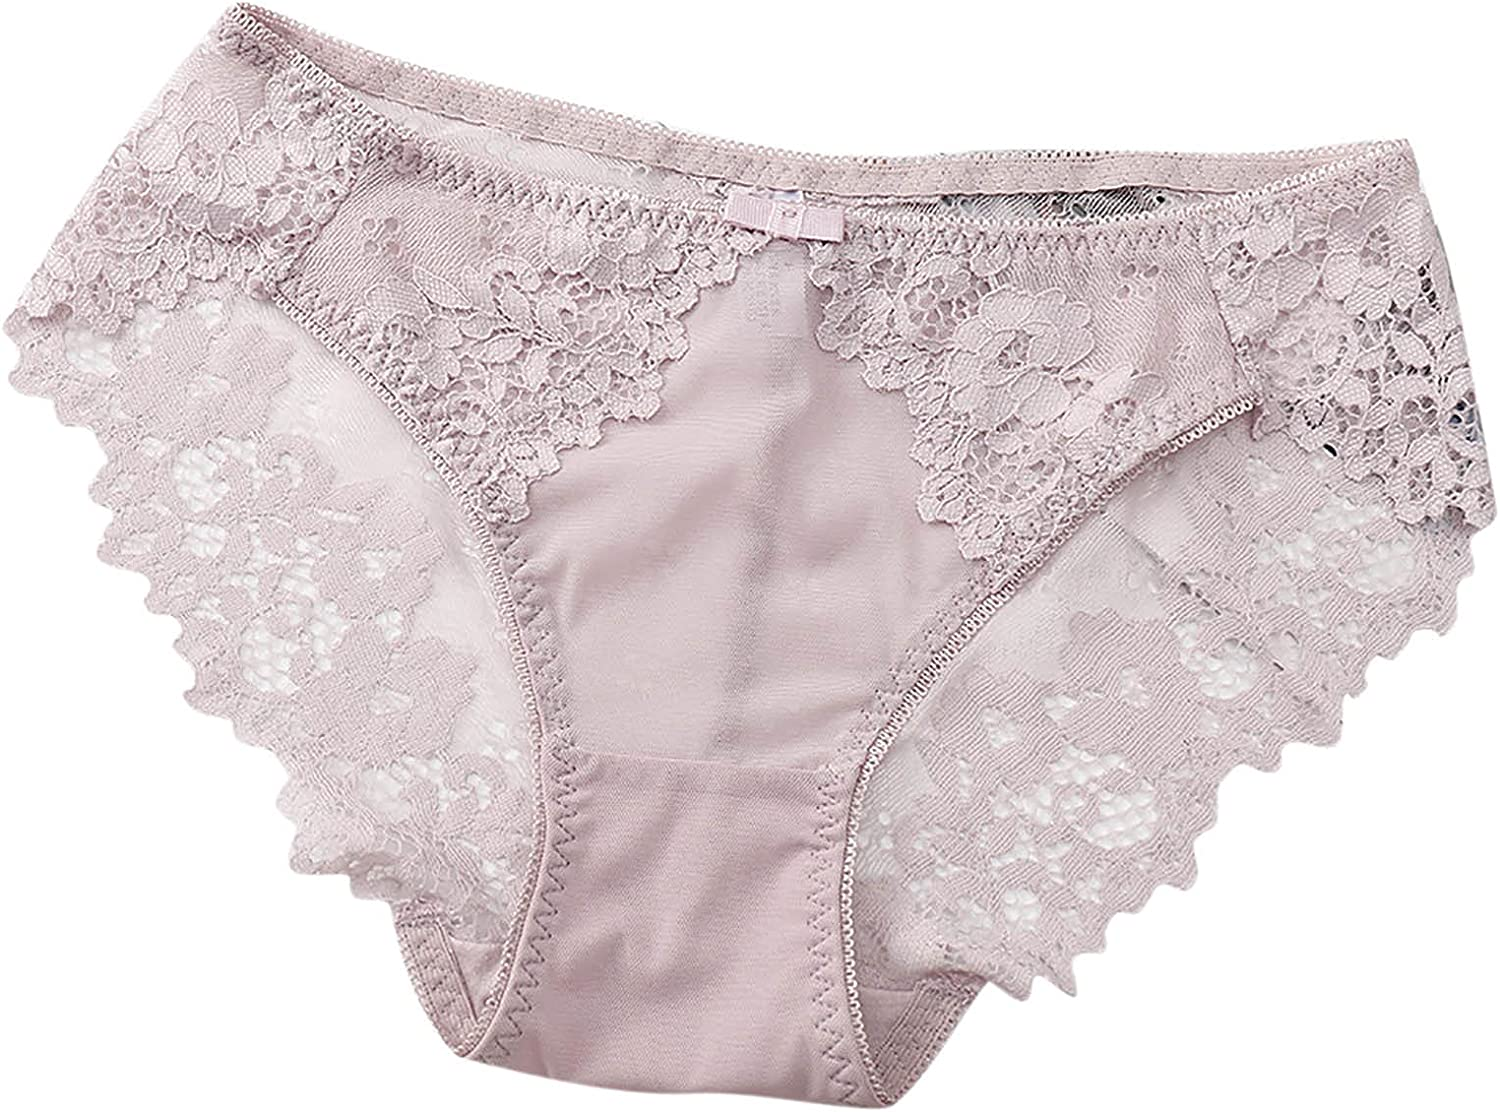 Women's Sexy Lace Panties Mid Waist Elasticity Bowknot Briefs Hipster Mesh Knickers Midnight Lingerie Underwear